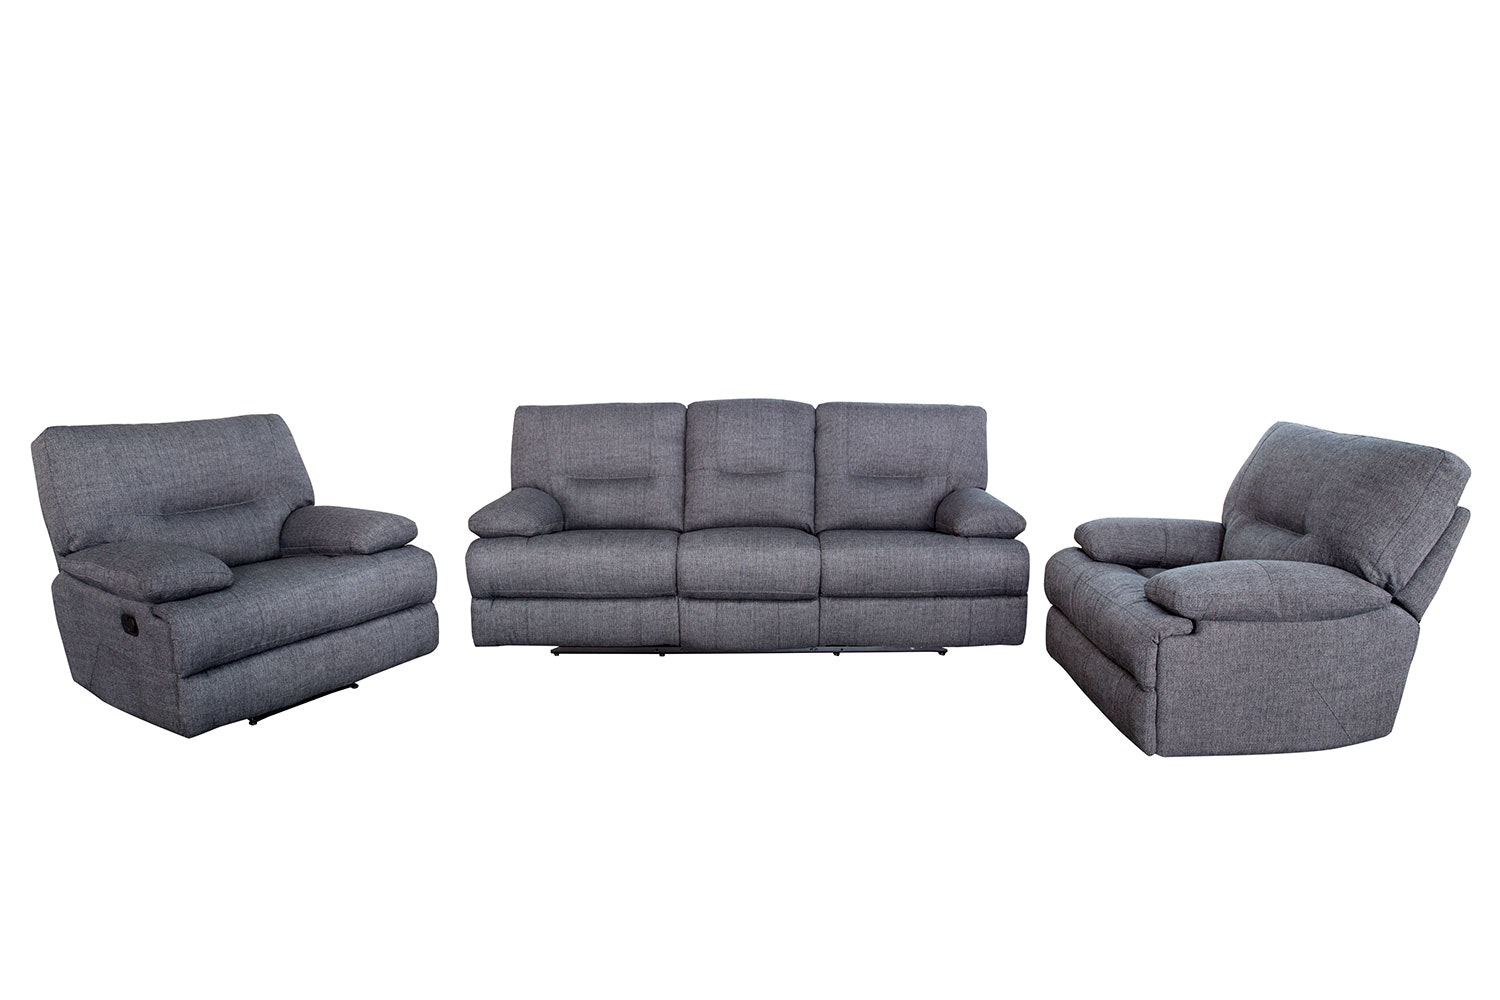 Dante 3 Piece Fabric Recliner Lounge Suite